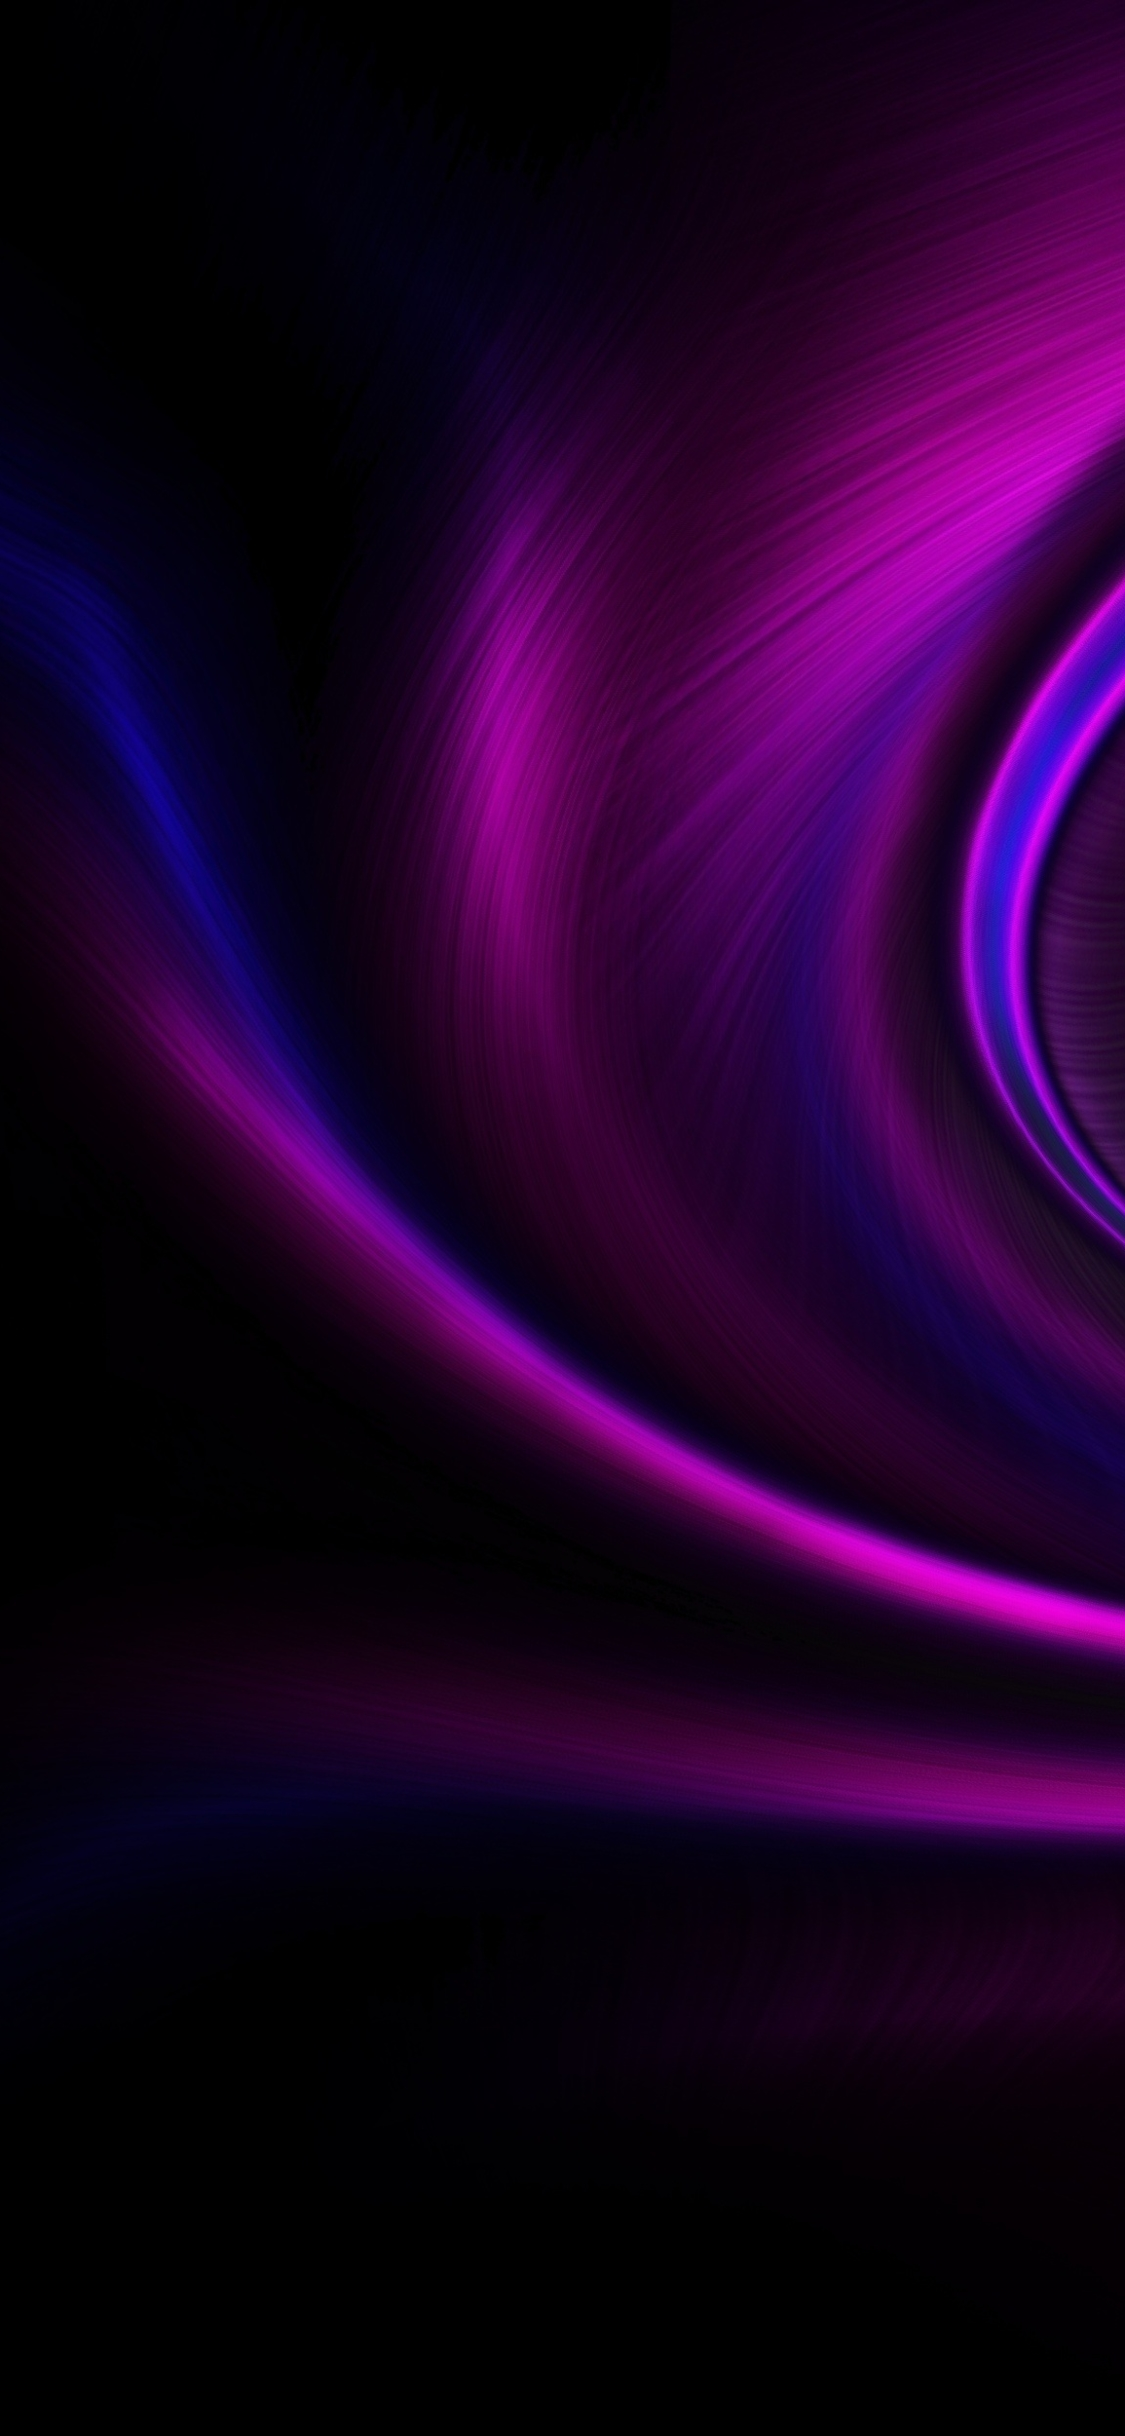 Abstractpurple 1125x2436 Wallpaper Id 704318 Mobile Abyss